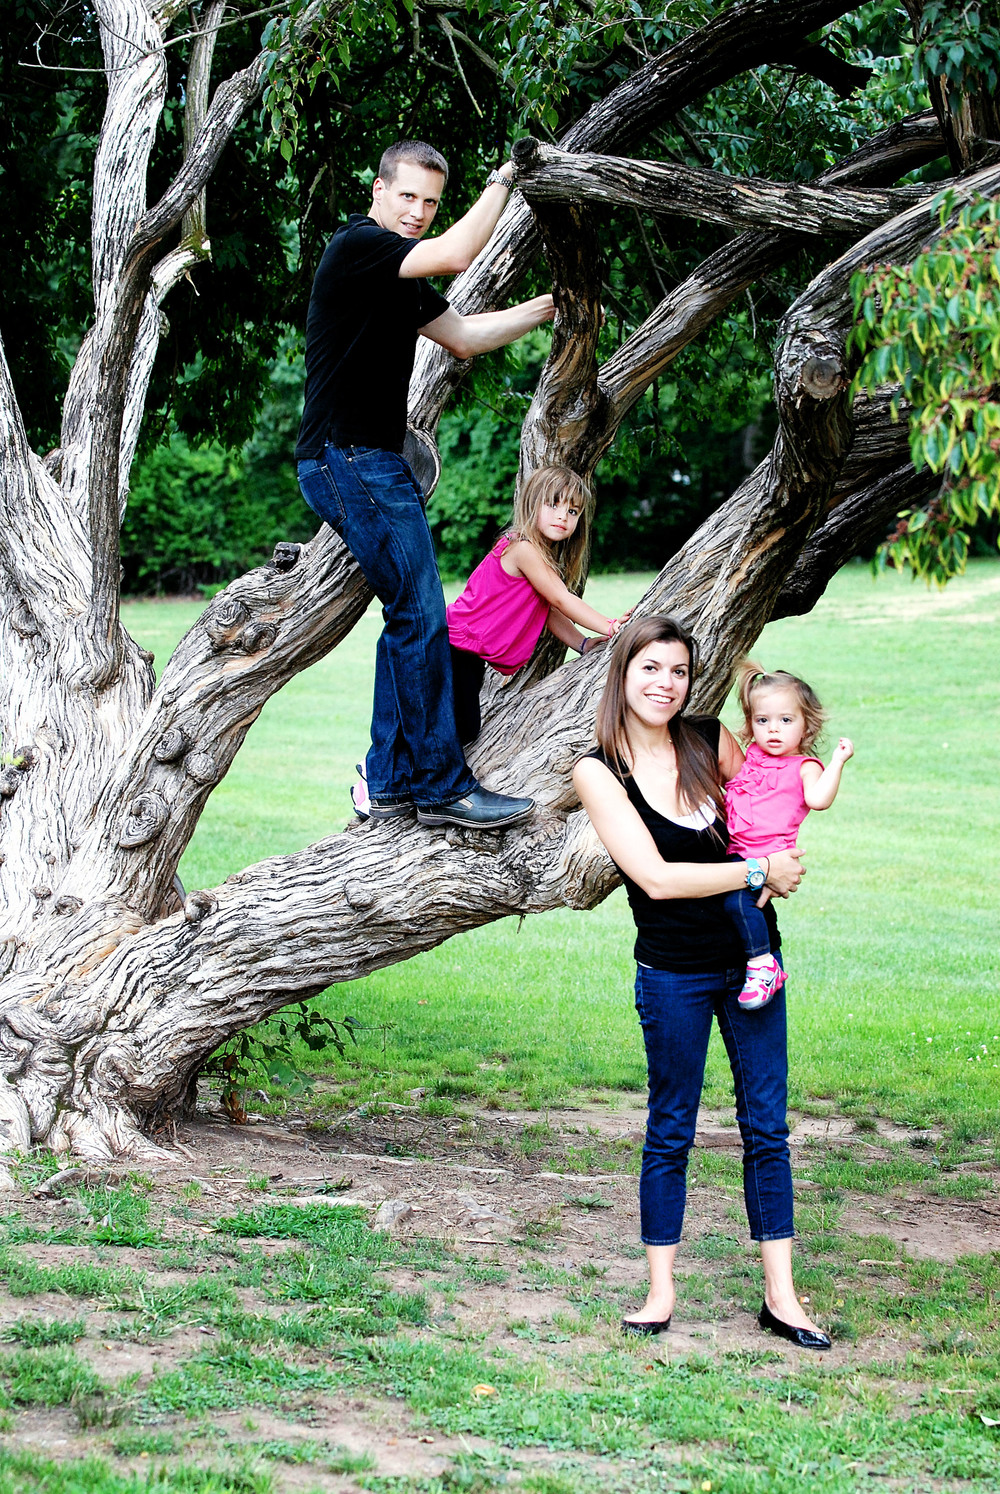 _DSC0515 family in tree color sensation retouched.jpg